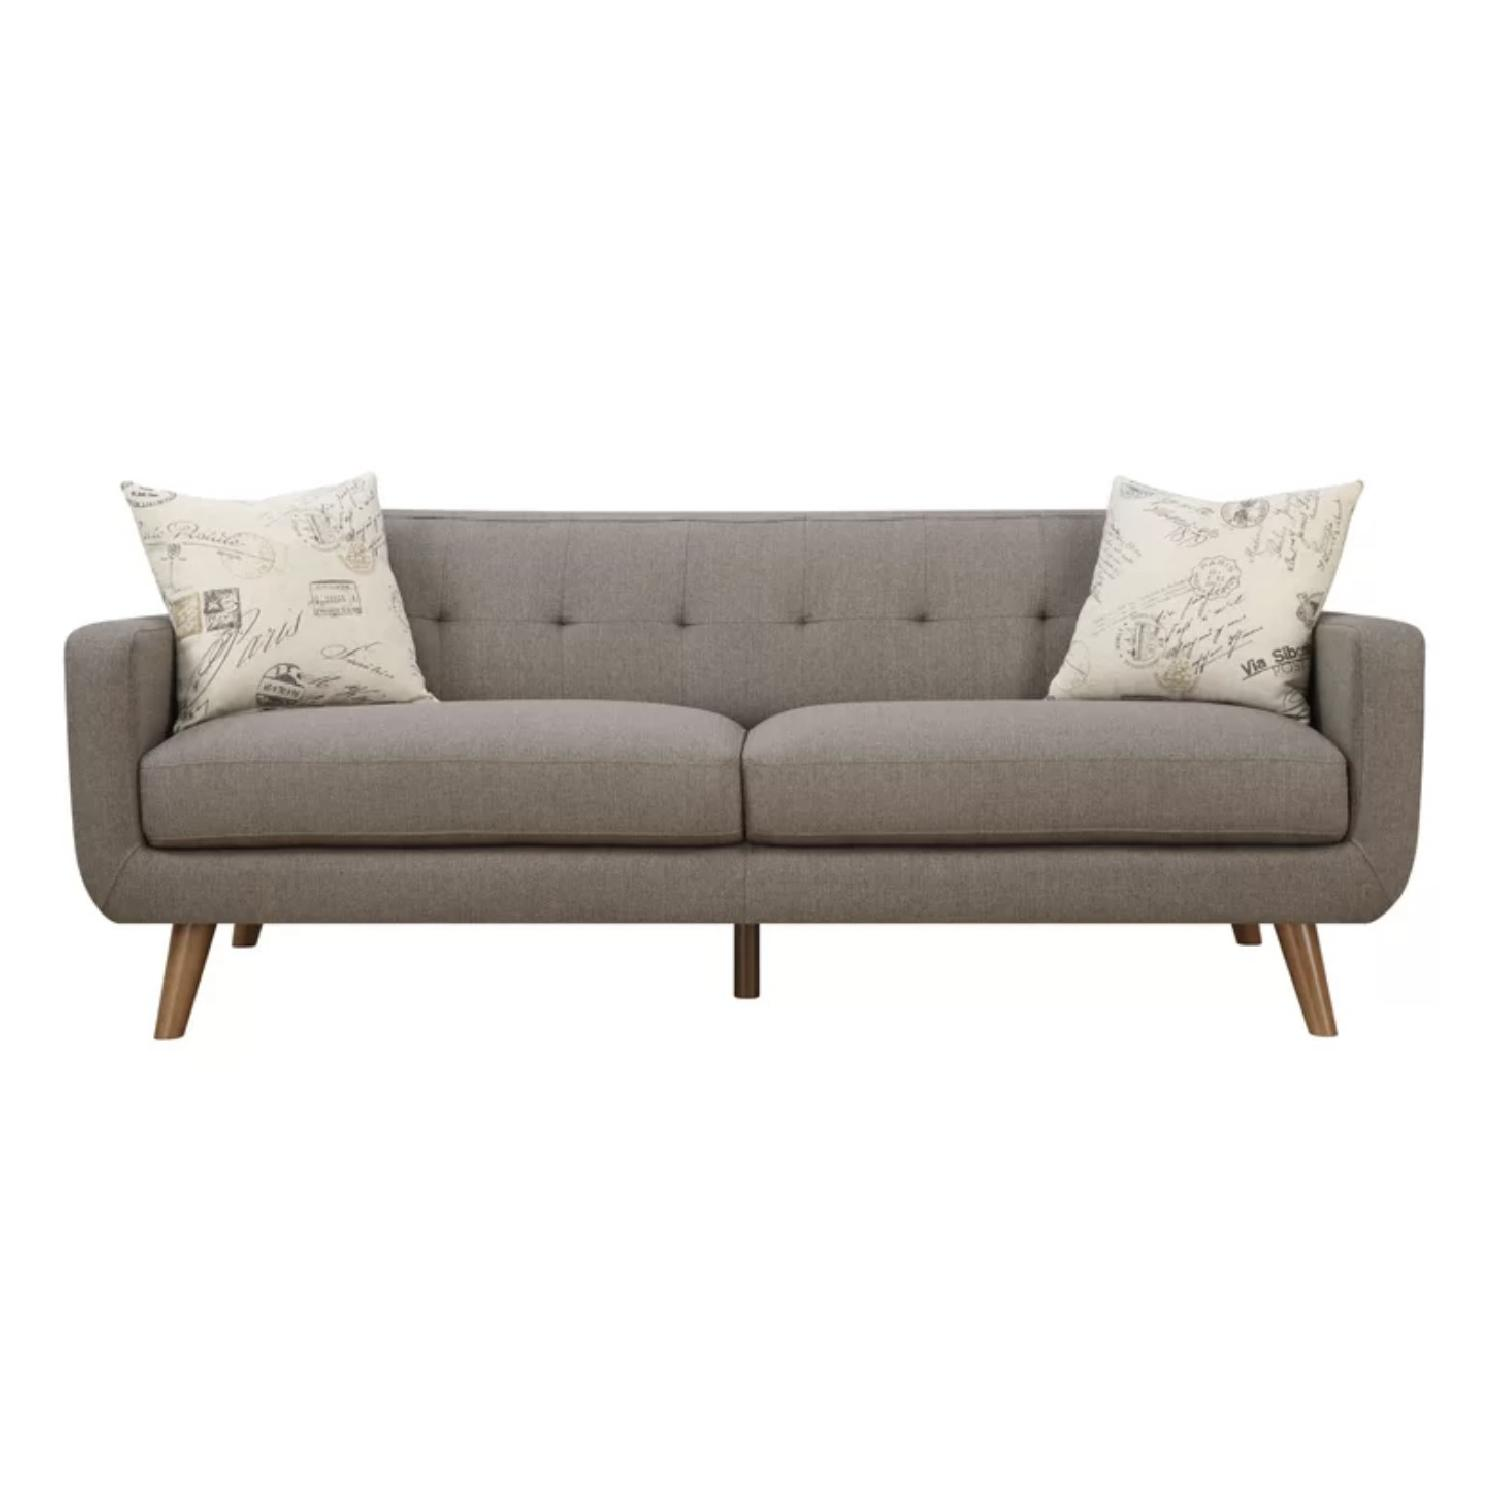 Latitude Run Gaven Mid Century Sofa